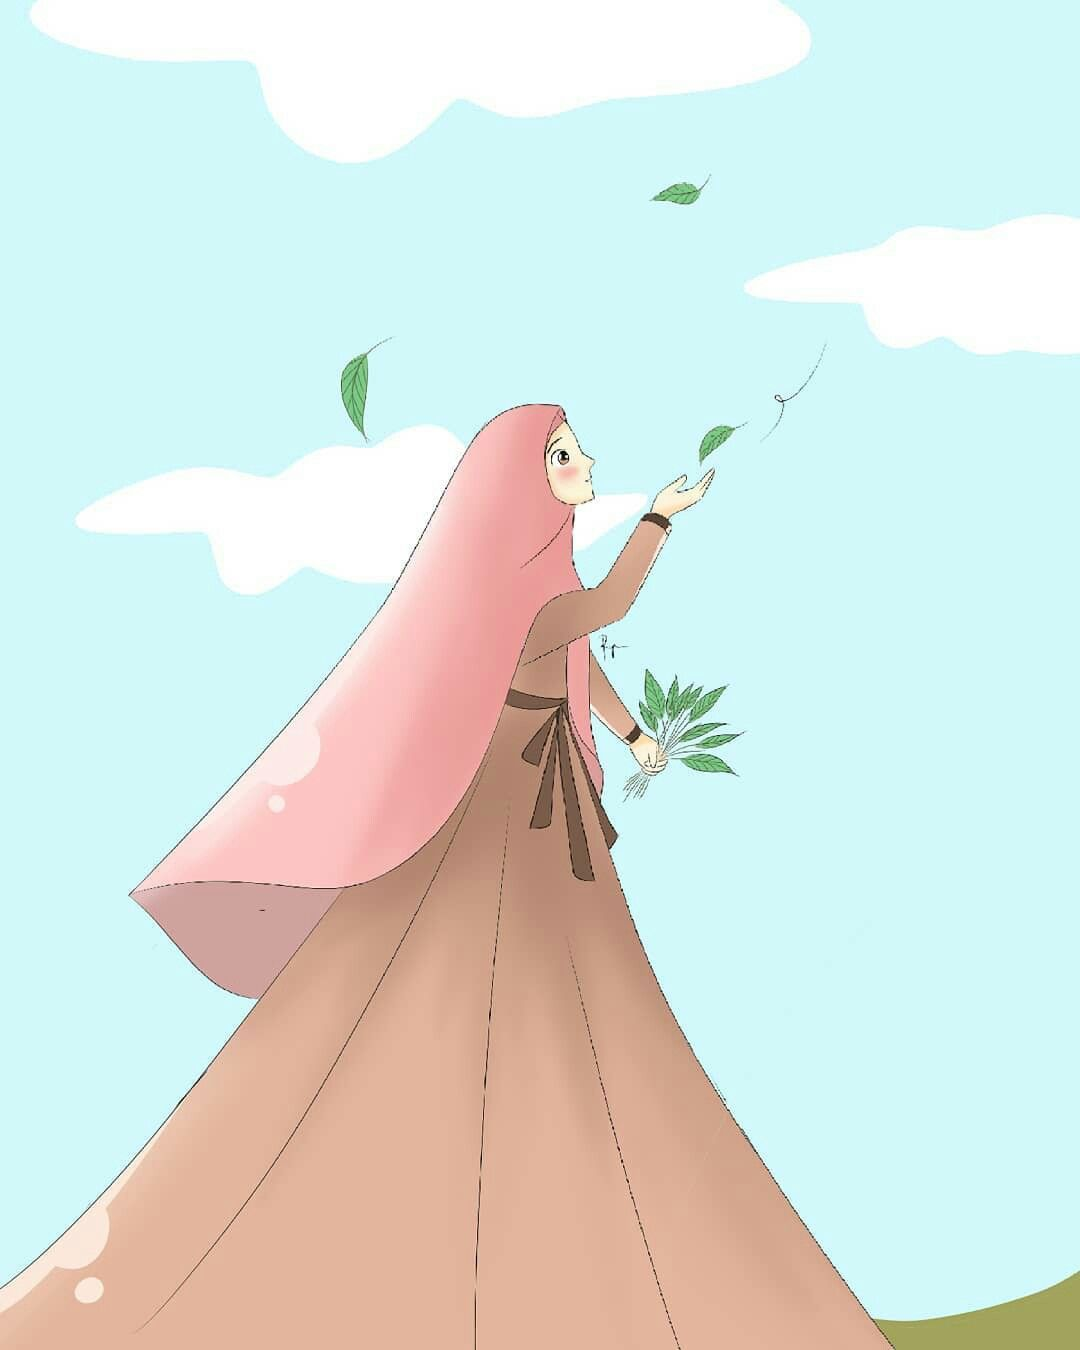 Wallpapers Muslimah: Cute Muslimah Girl Cartoon Wallpapers